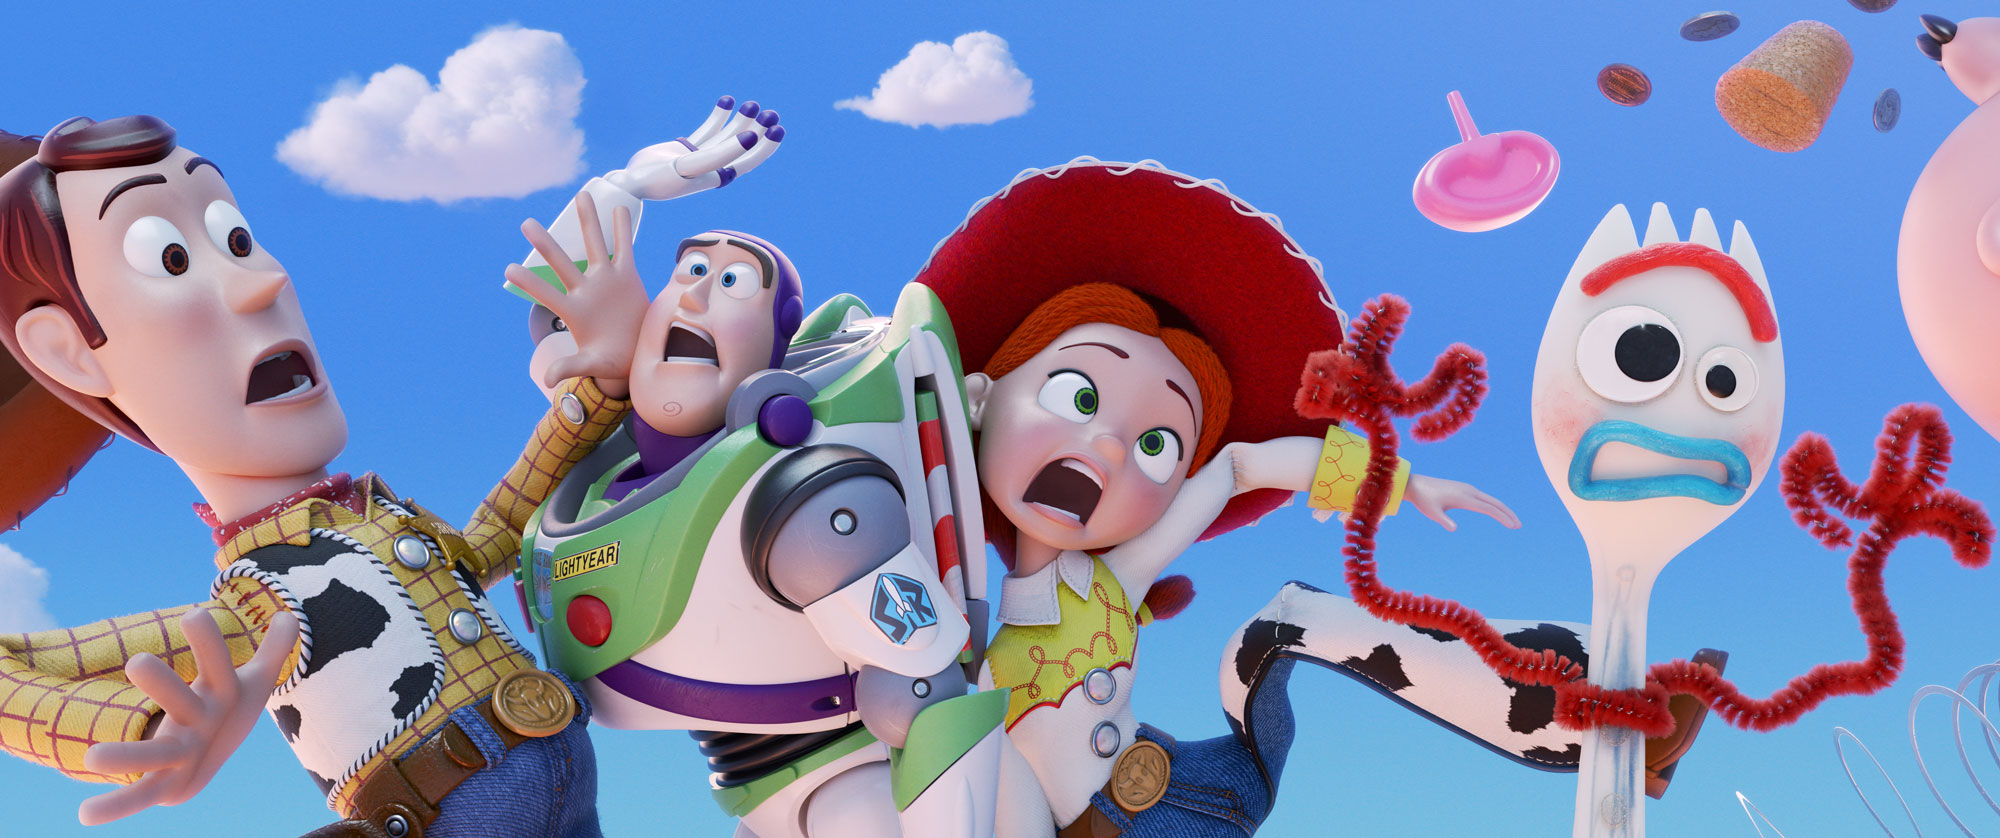 Disney-Pixar Releases First Teaser and Poster for Toy Story 4!